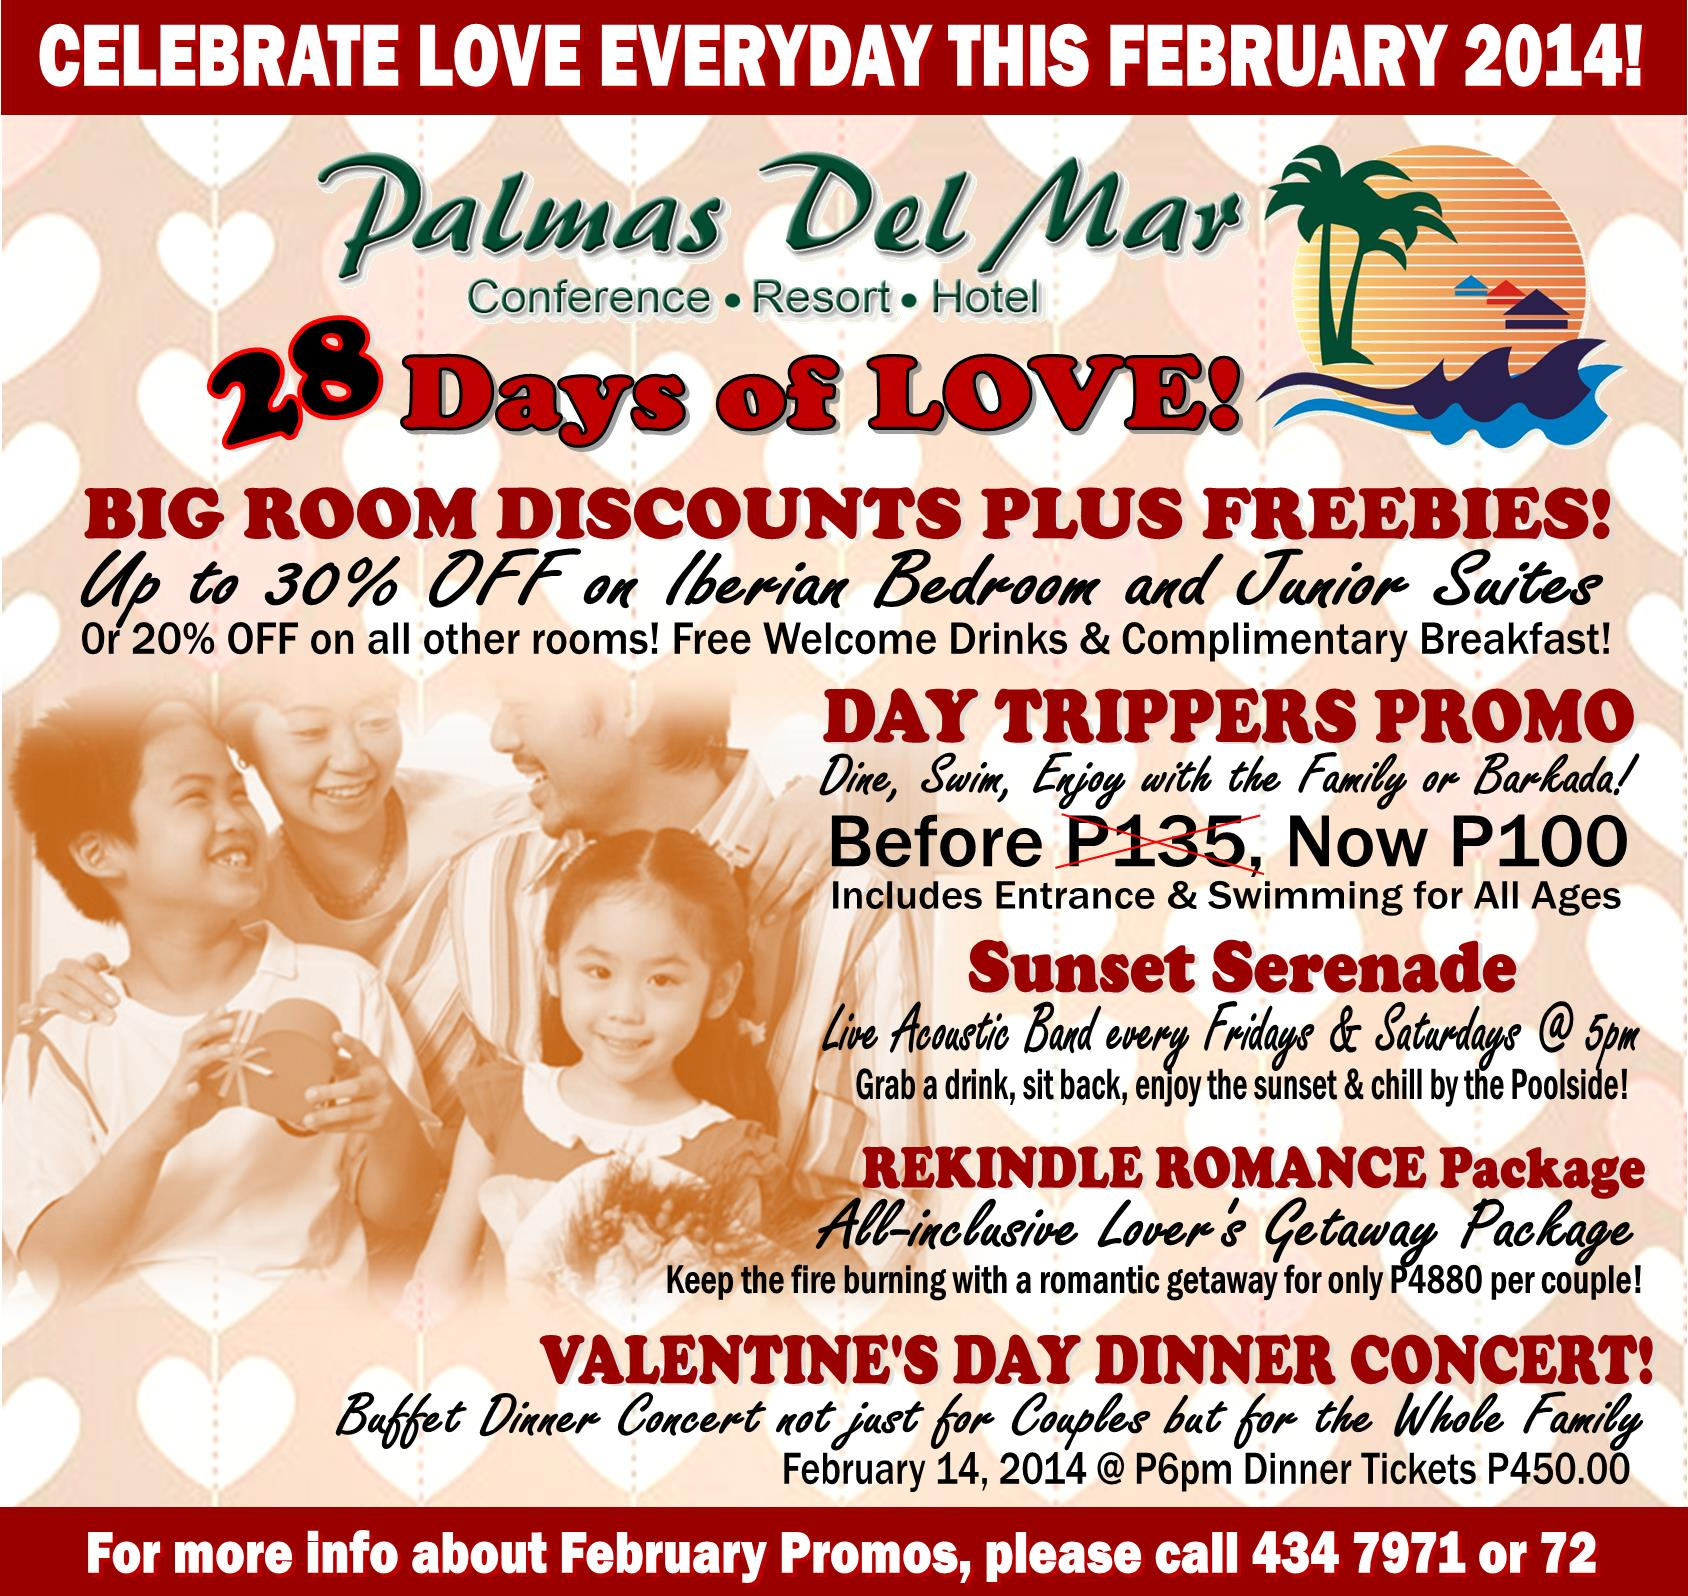 FEBRUARY EVENTS AND PROMOS